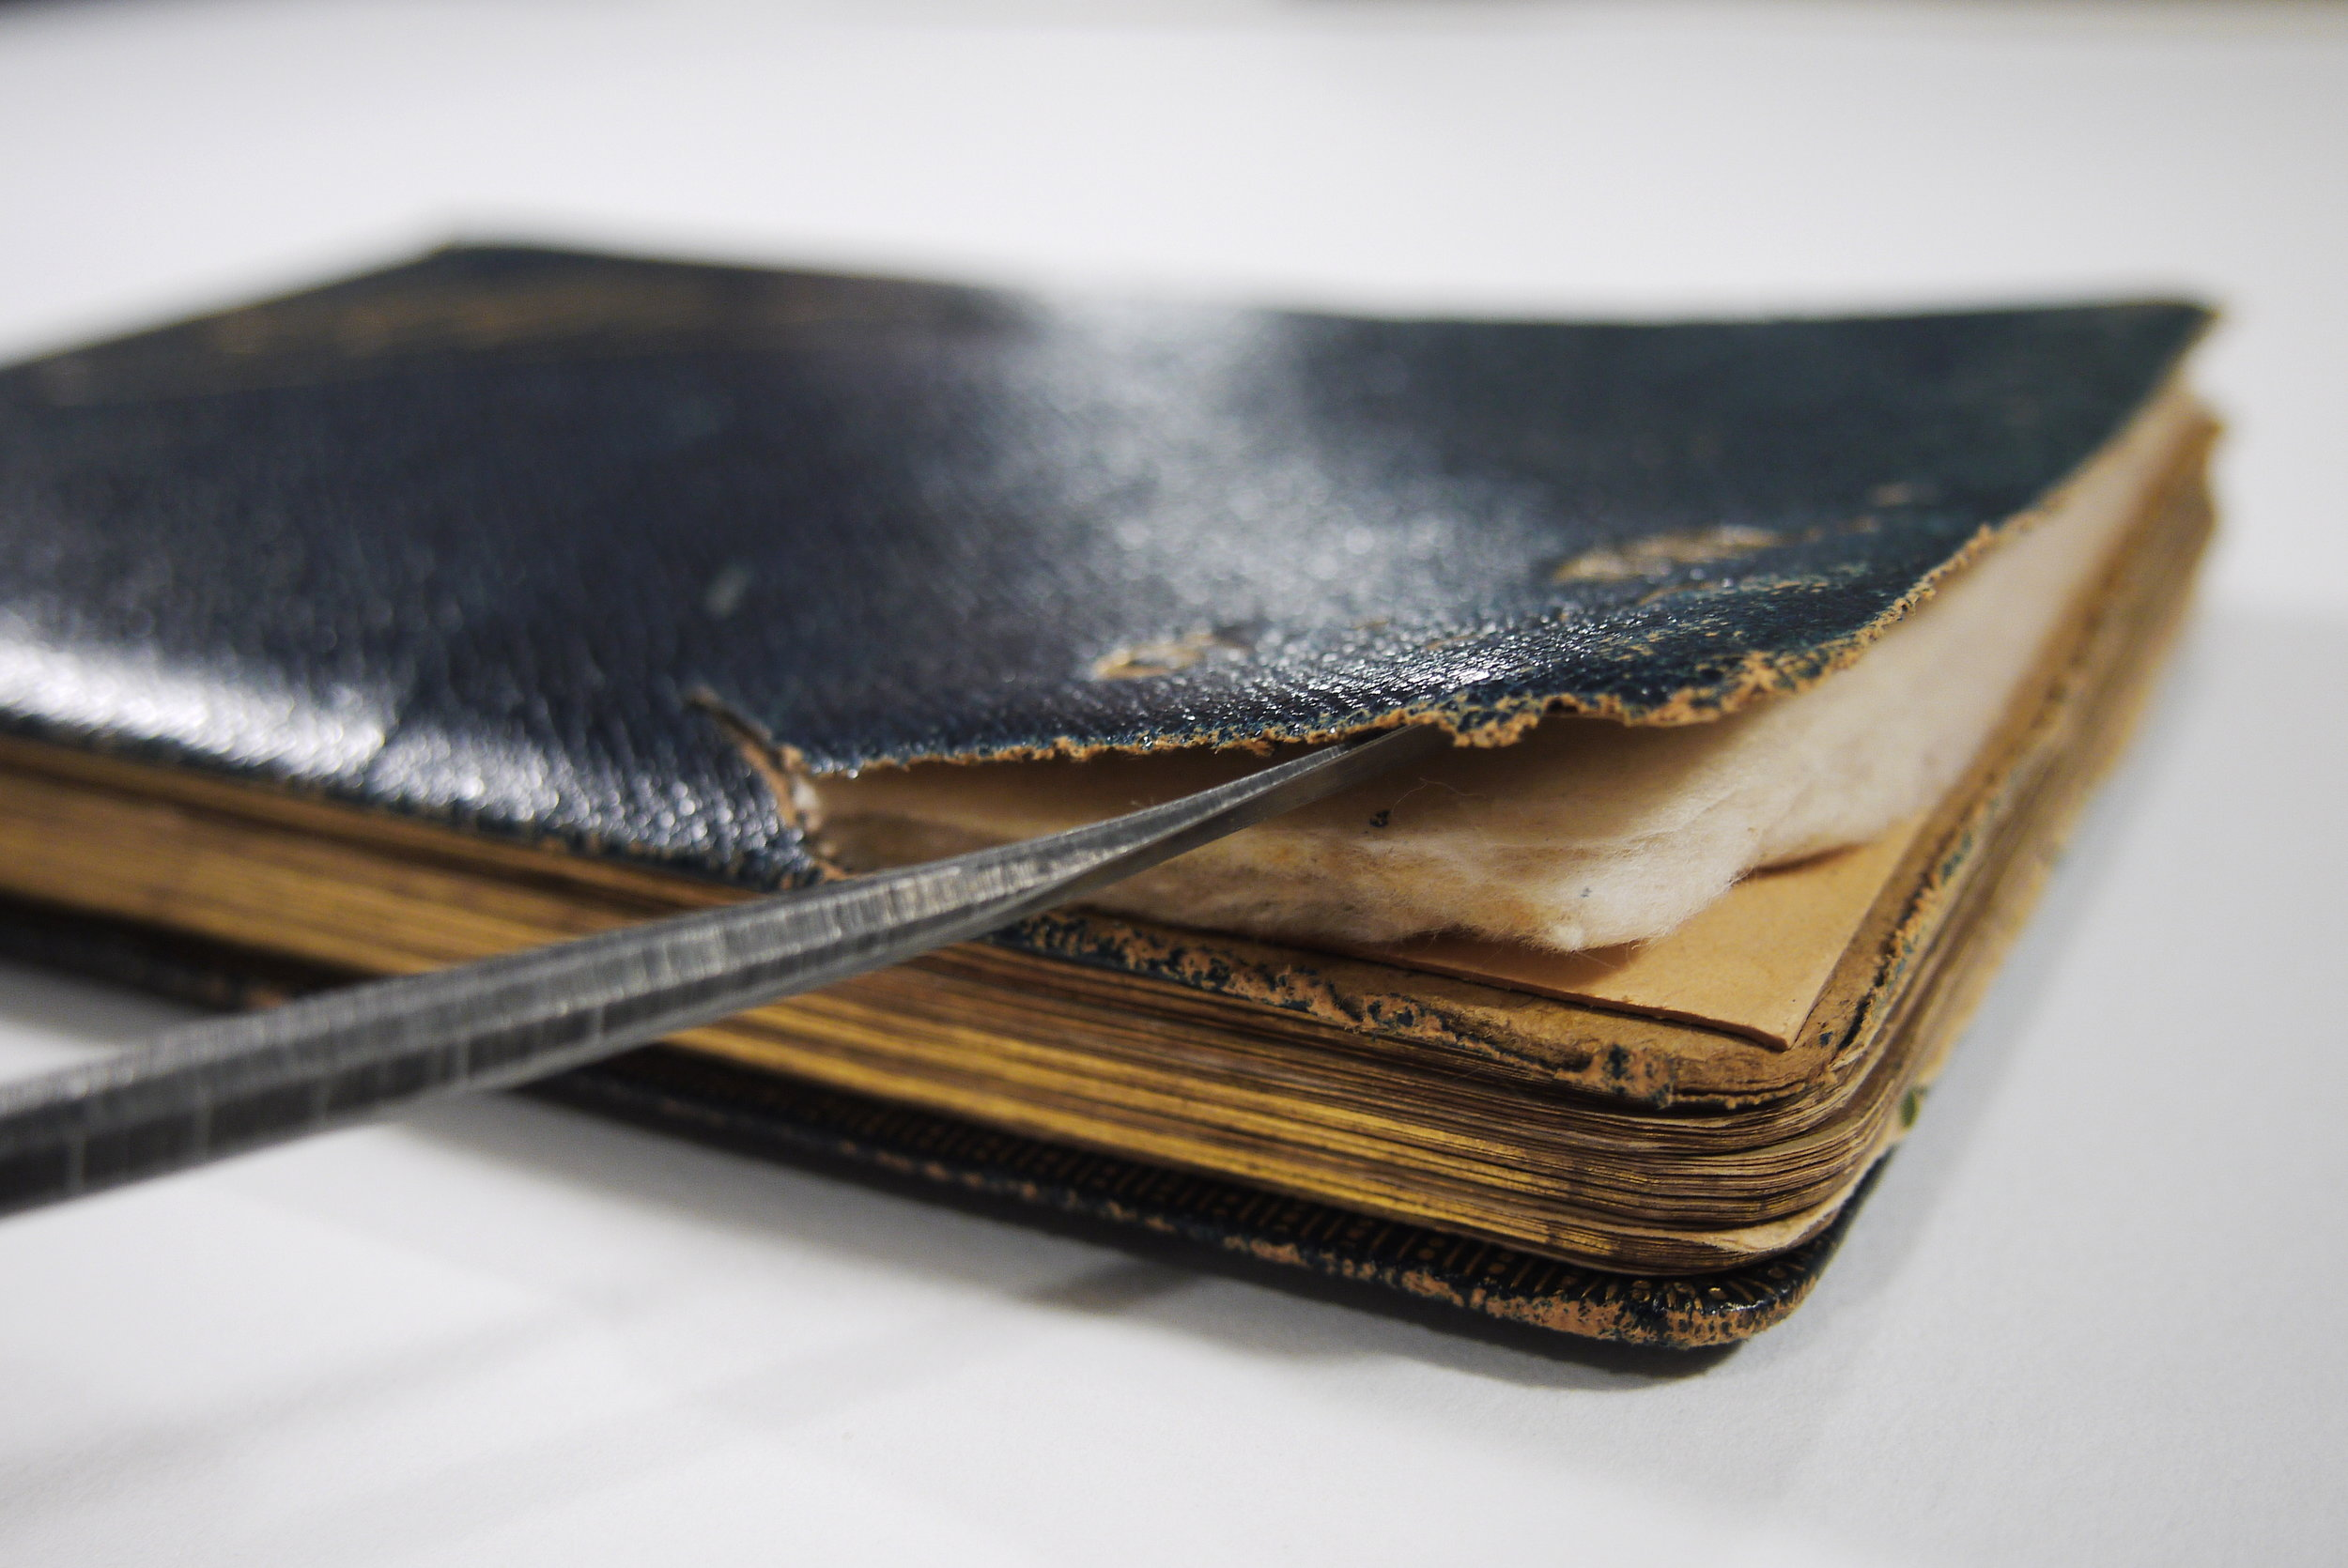 The binding of the album presents damage - the leather is cracked and the interior of the padded front cover is exposed.